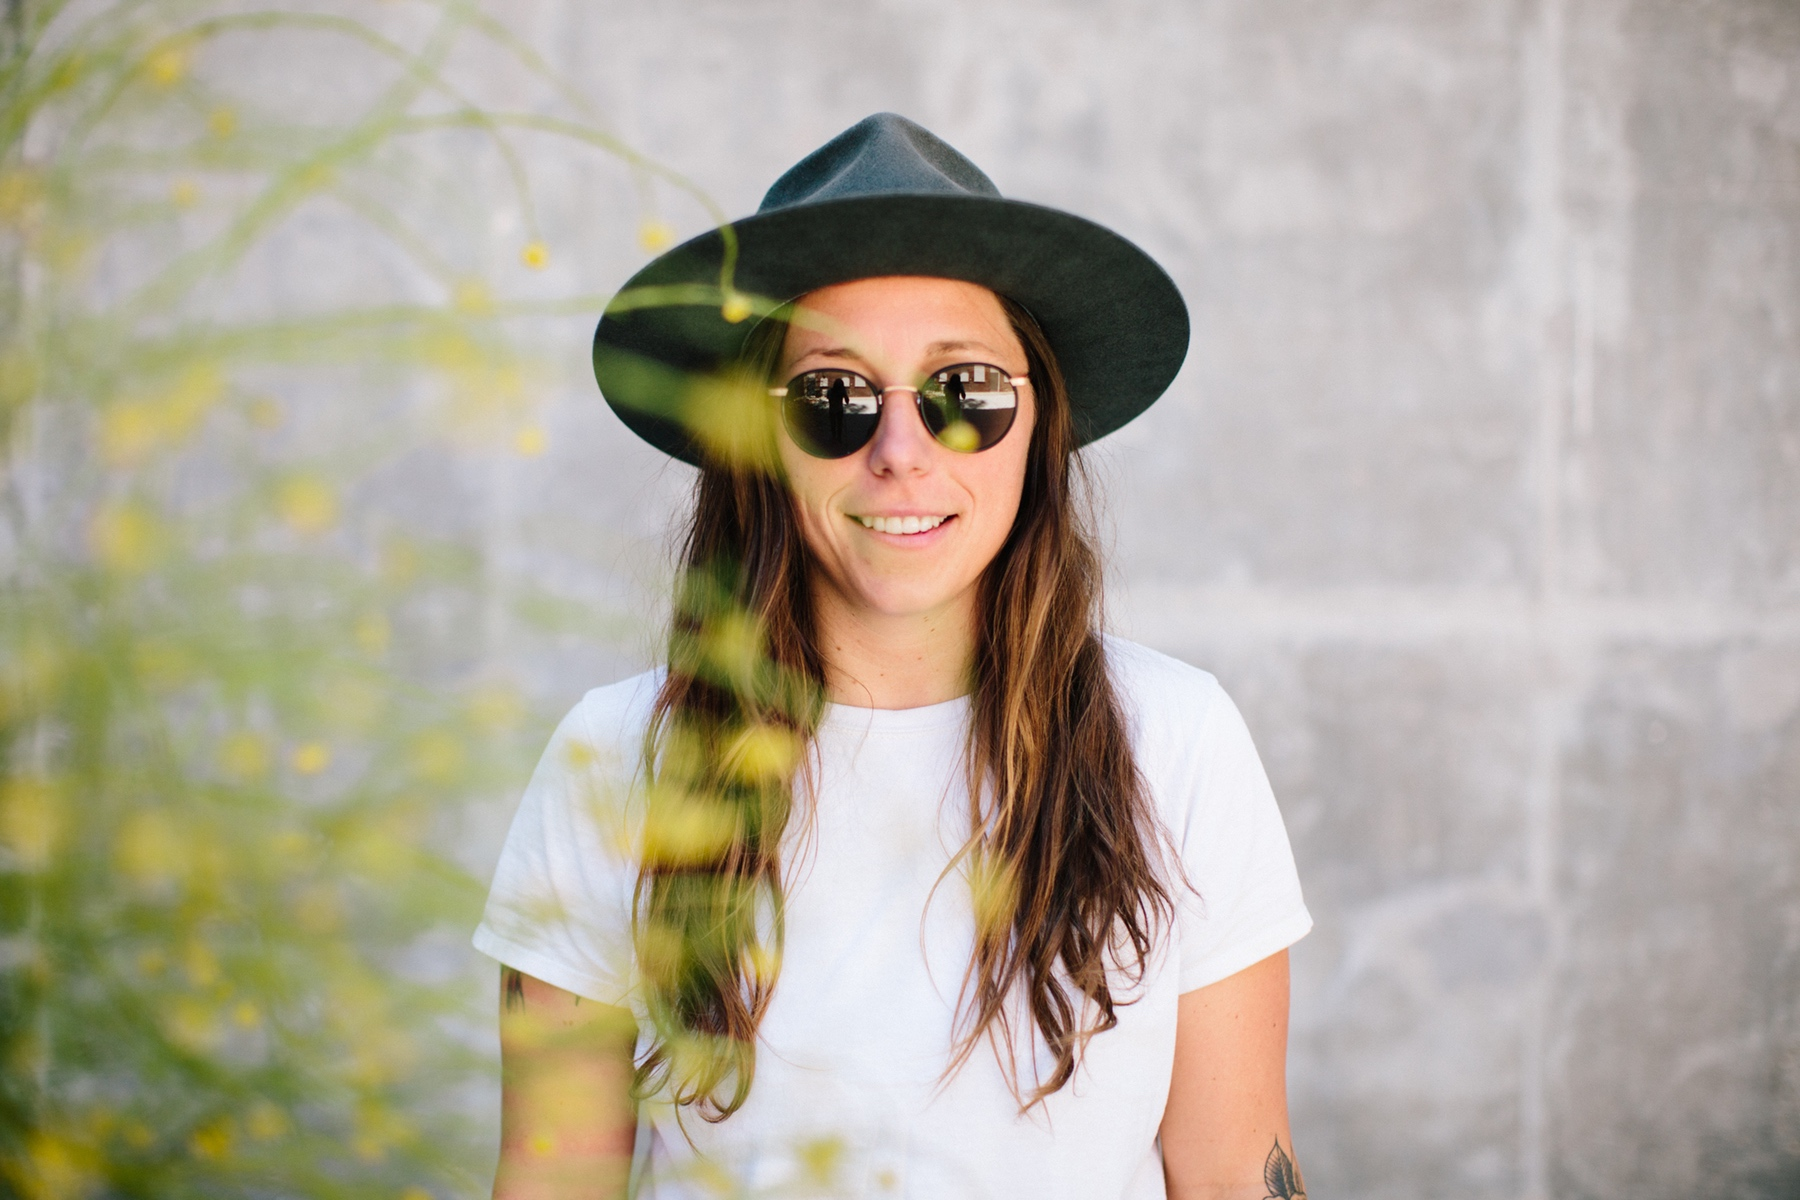 WEARING ALL THE HATS: OUR INTERVIEW WITH LAUREN LILLY, FOUNDER OF YELLOW 108 - THE YELLOW ROOM